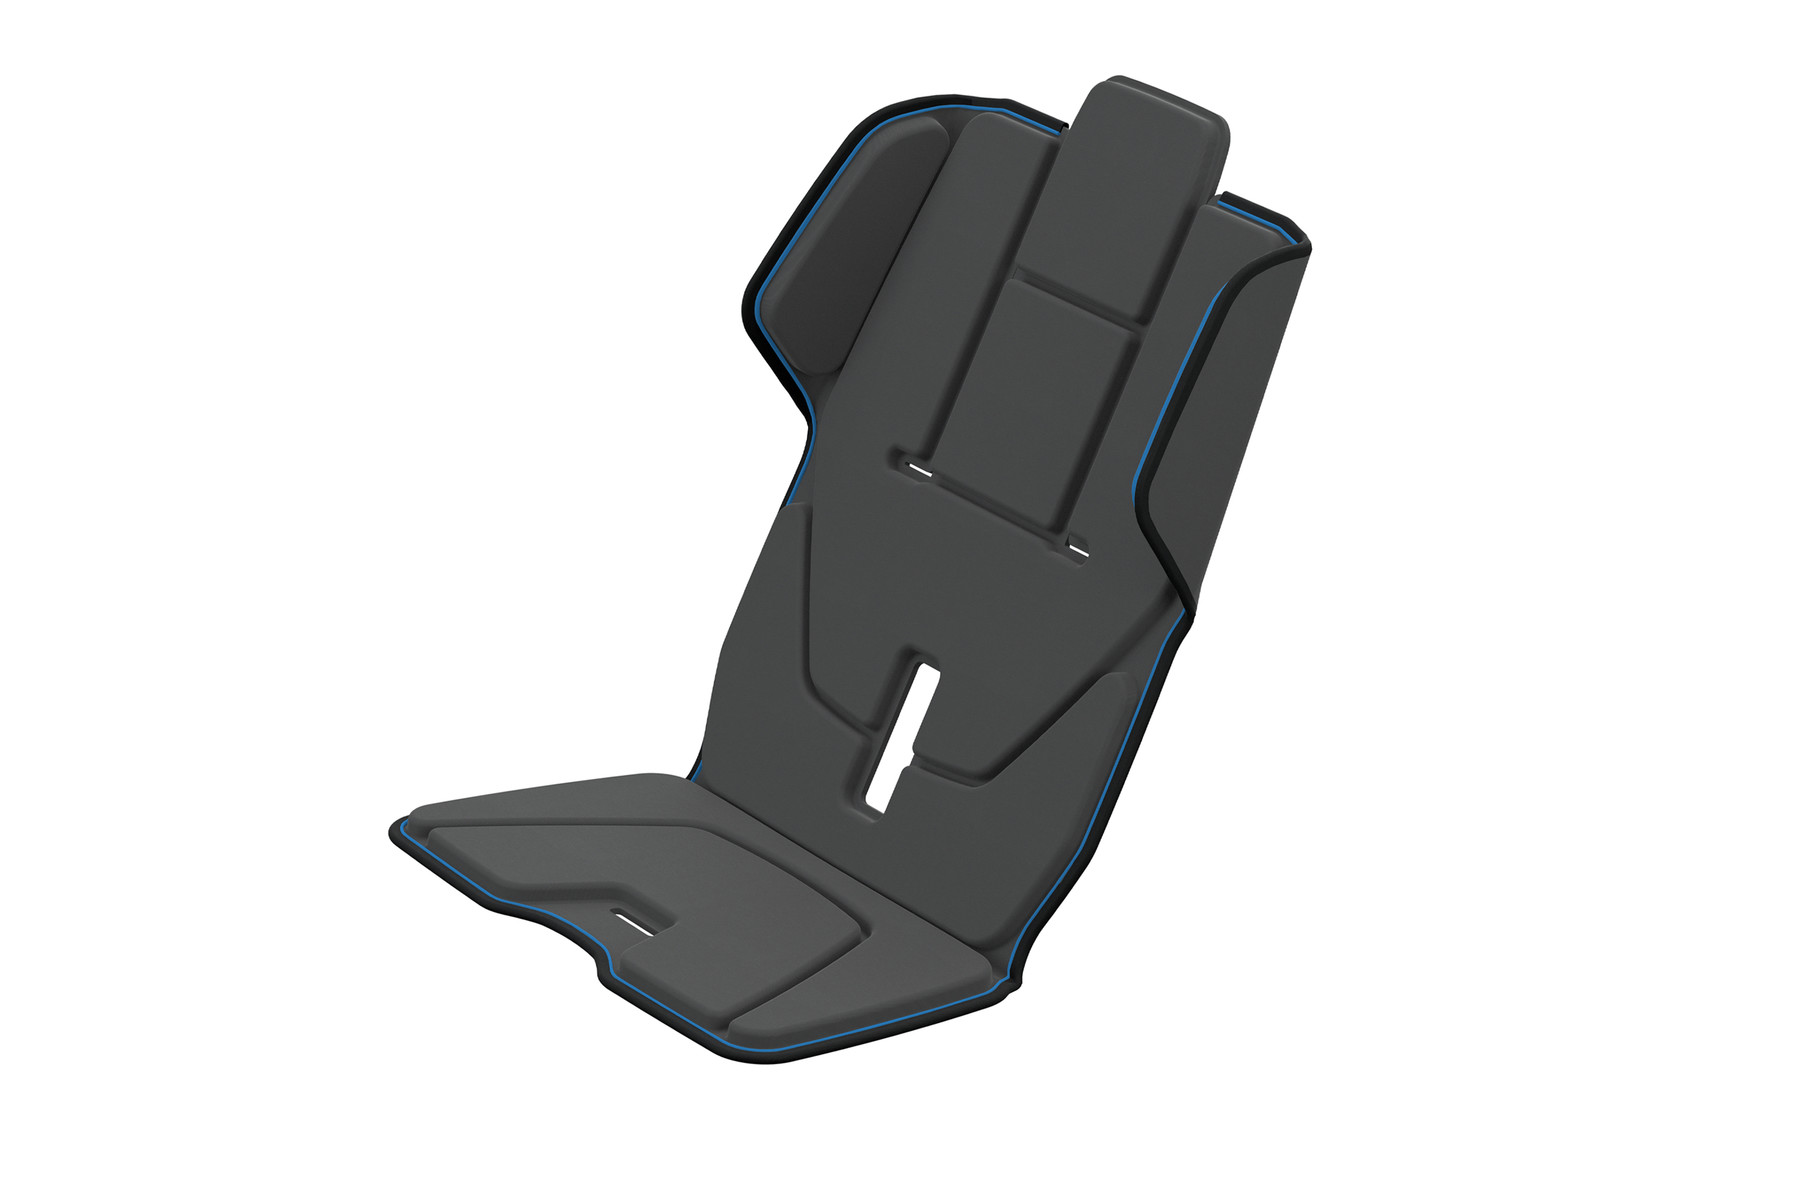 Accessory-Thule Chariot Padding